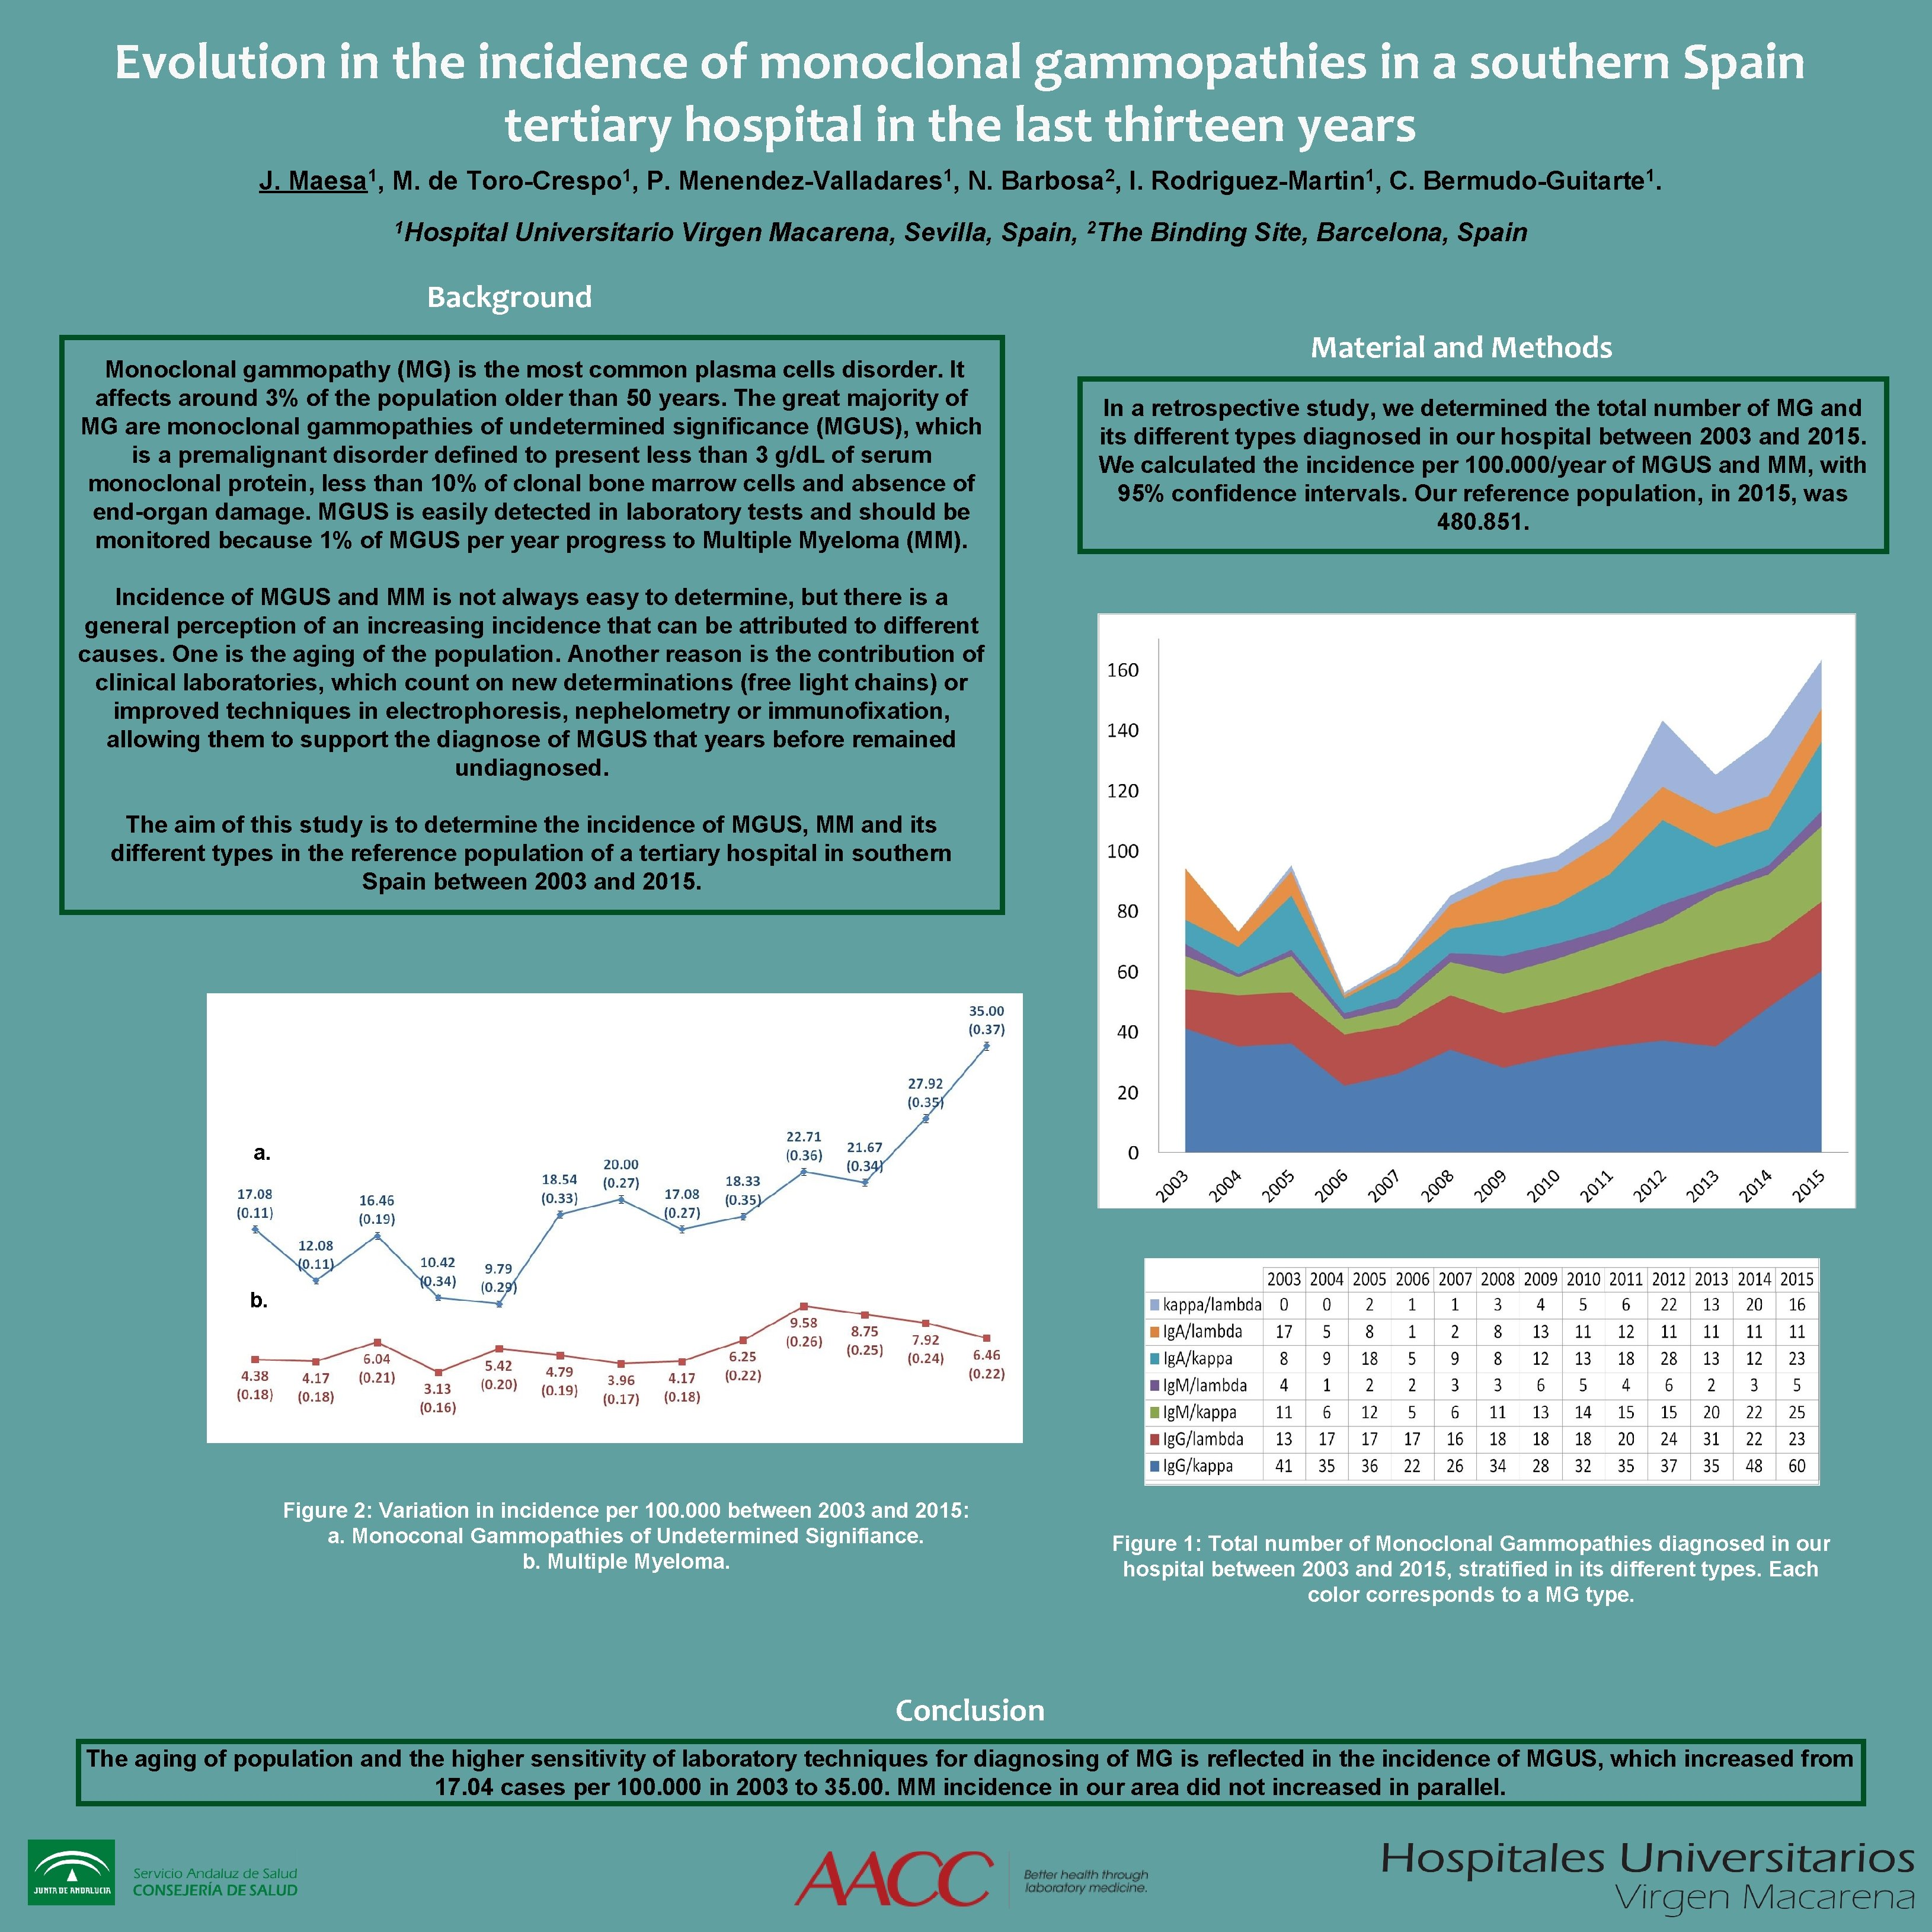 Evolution in the incidence of monoclonal gammopathies in a southern Spain tertiary hospital in